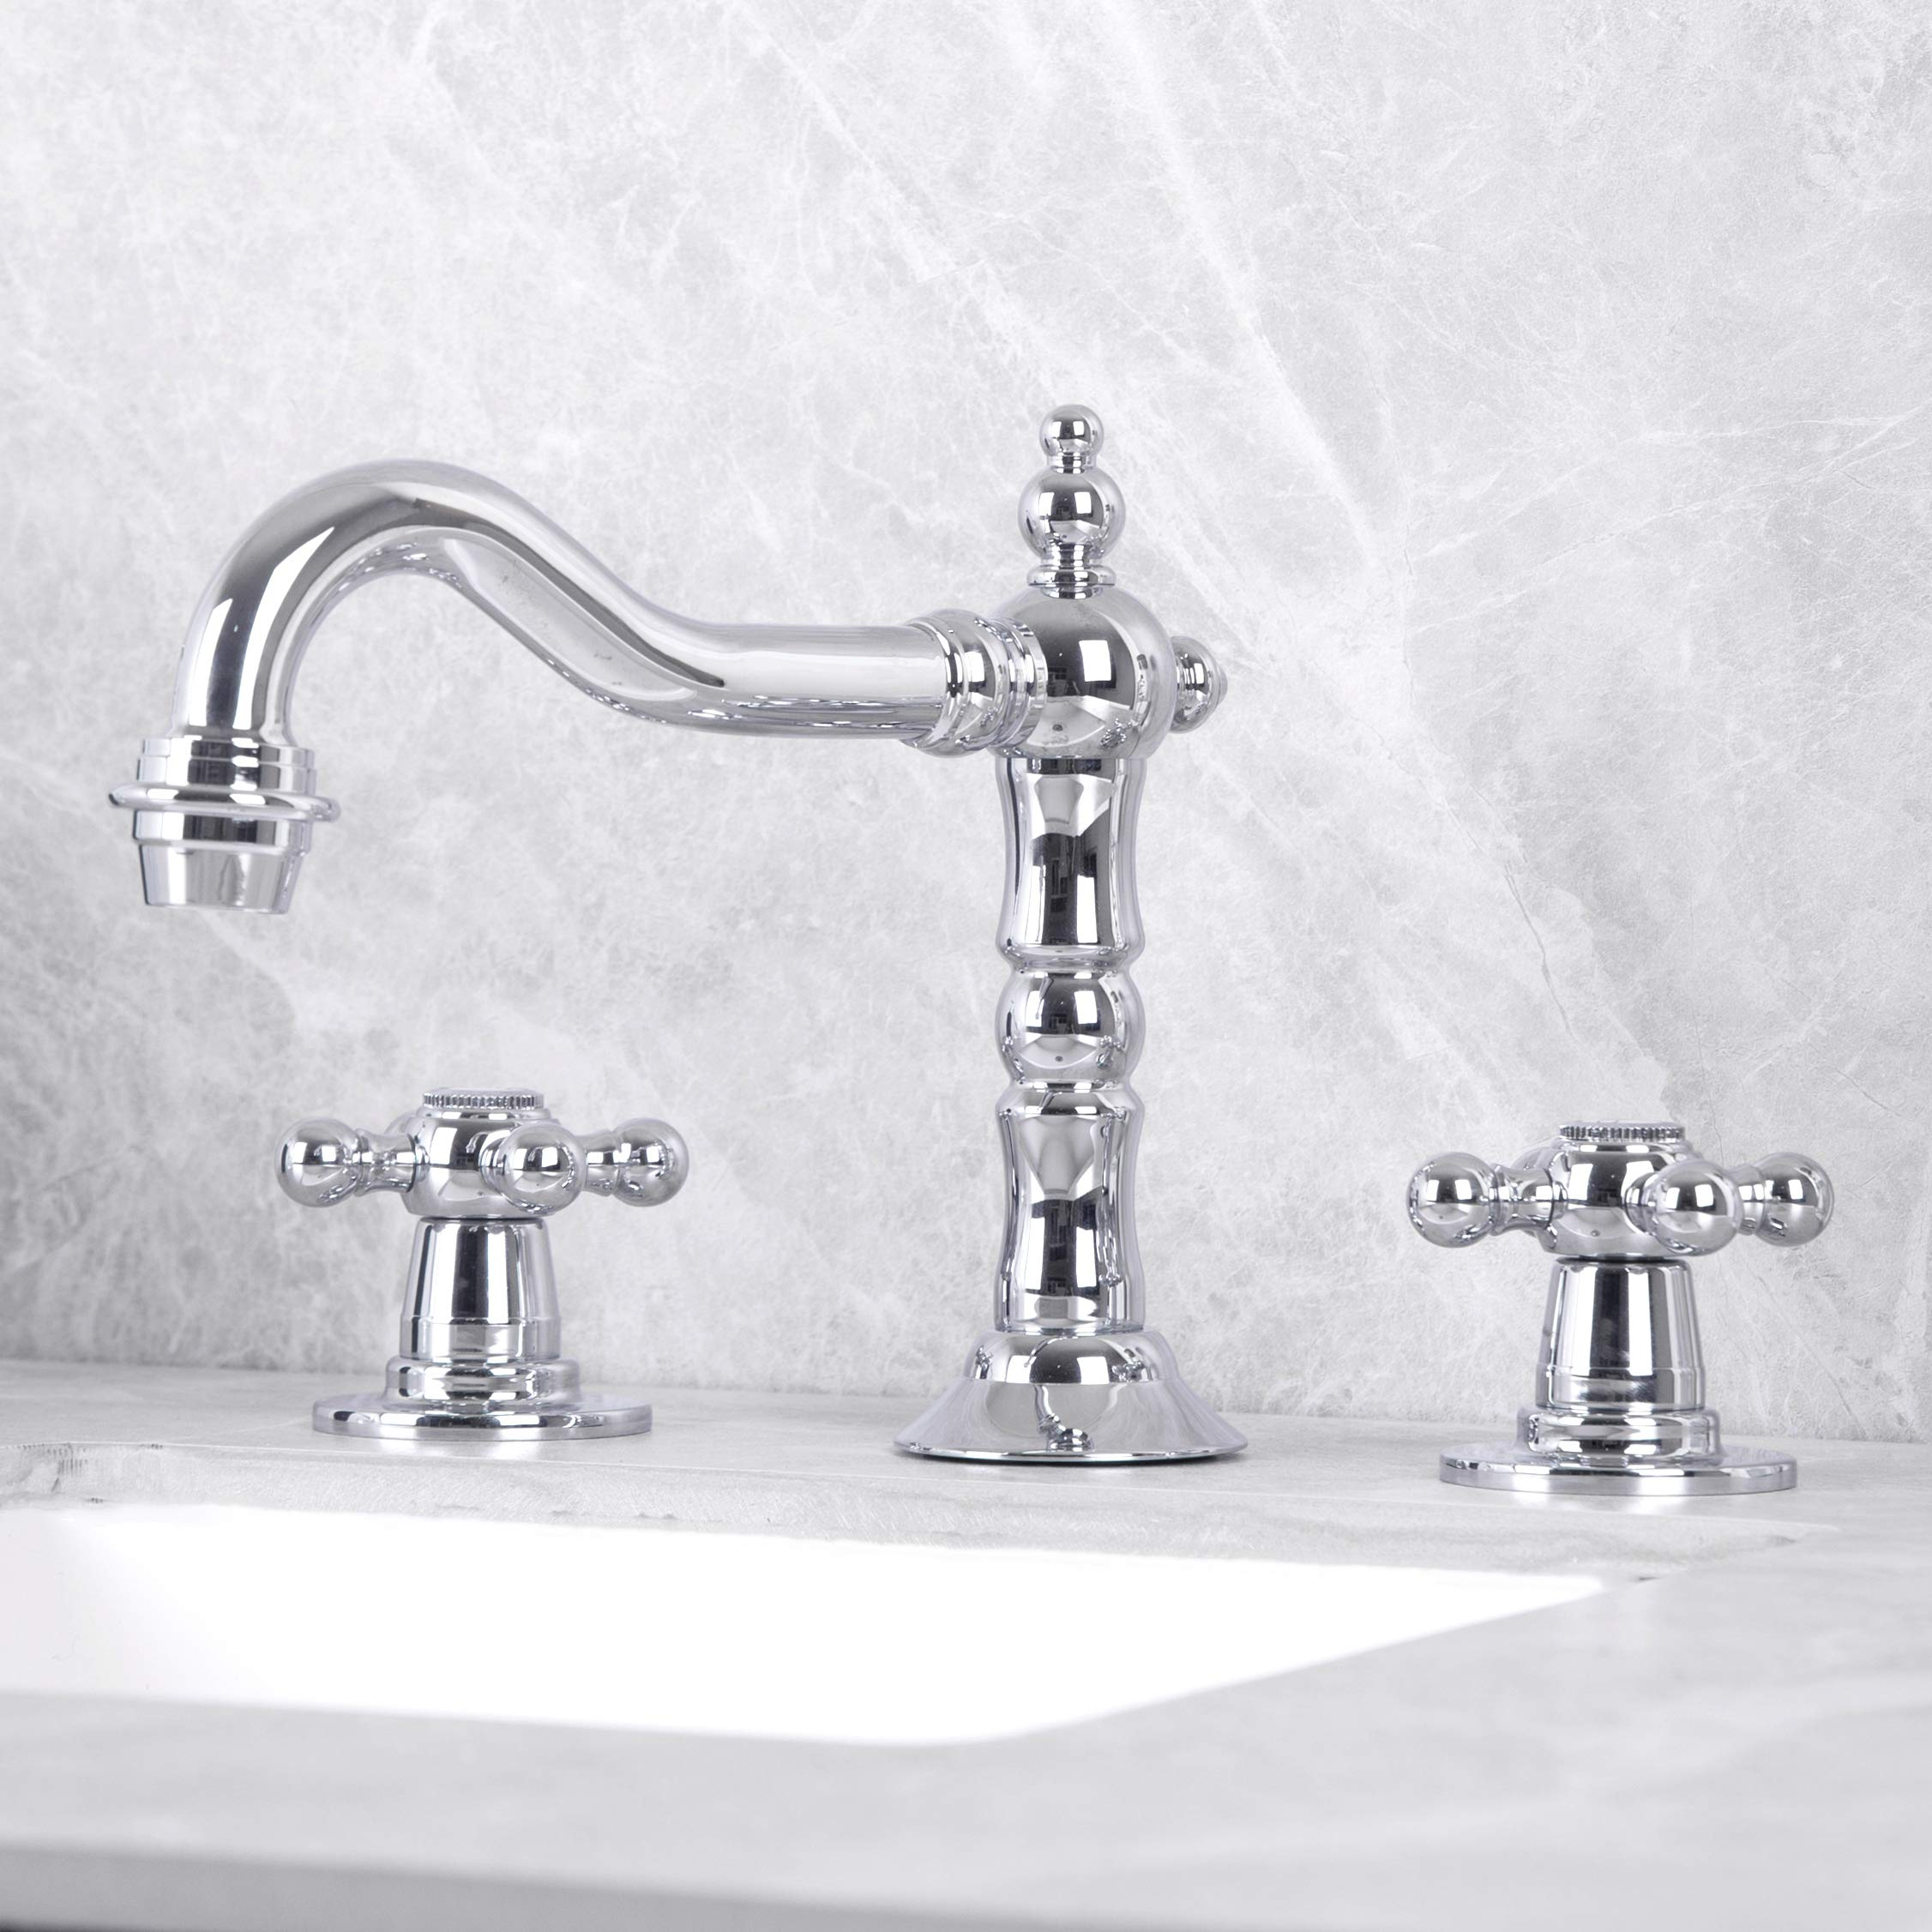 KAIMA Widespread Bathroom Faucet Three Holes Two-Handle Bathroom Sink Faucet Chrome Finished by KAIMA